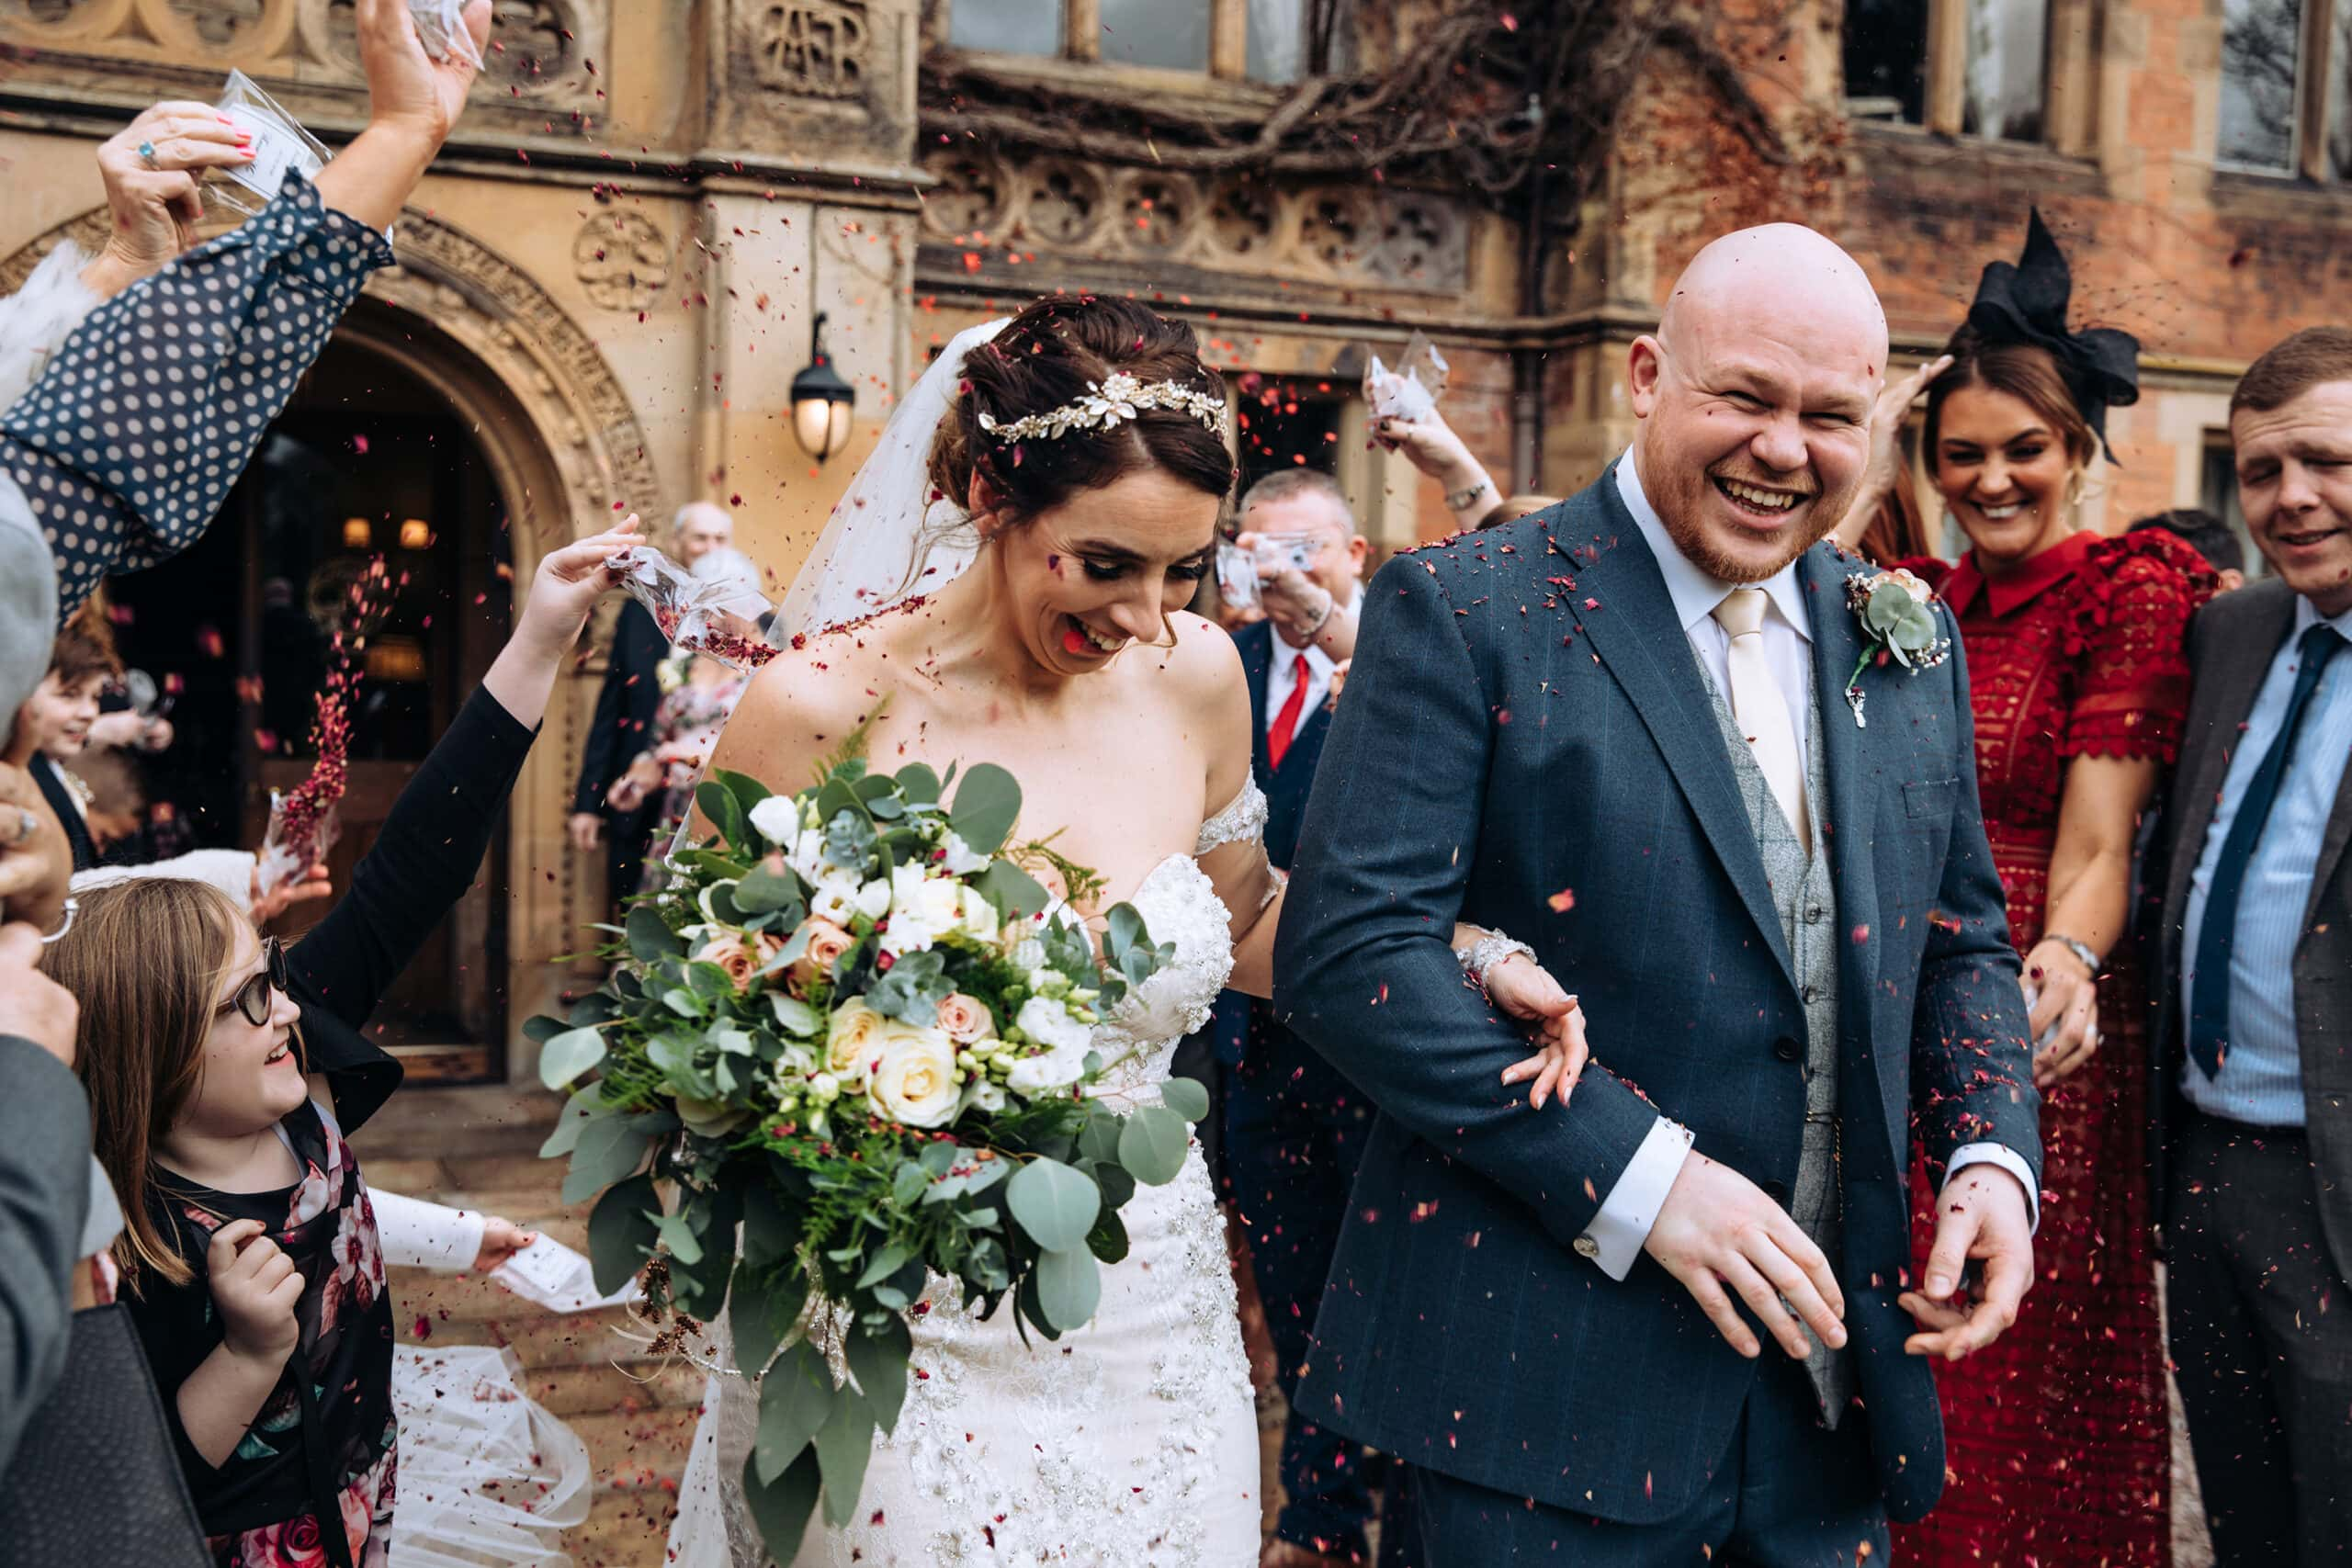 Wedding Photographer Manchester Bride and Groom with Confetti